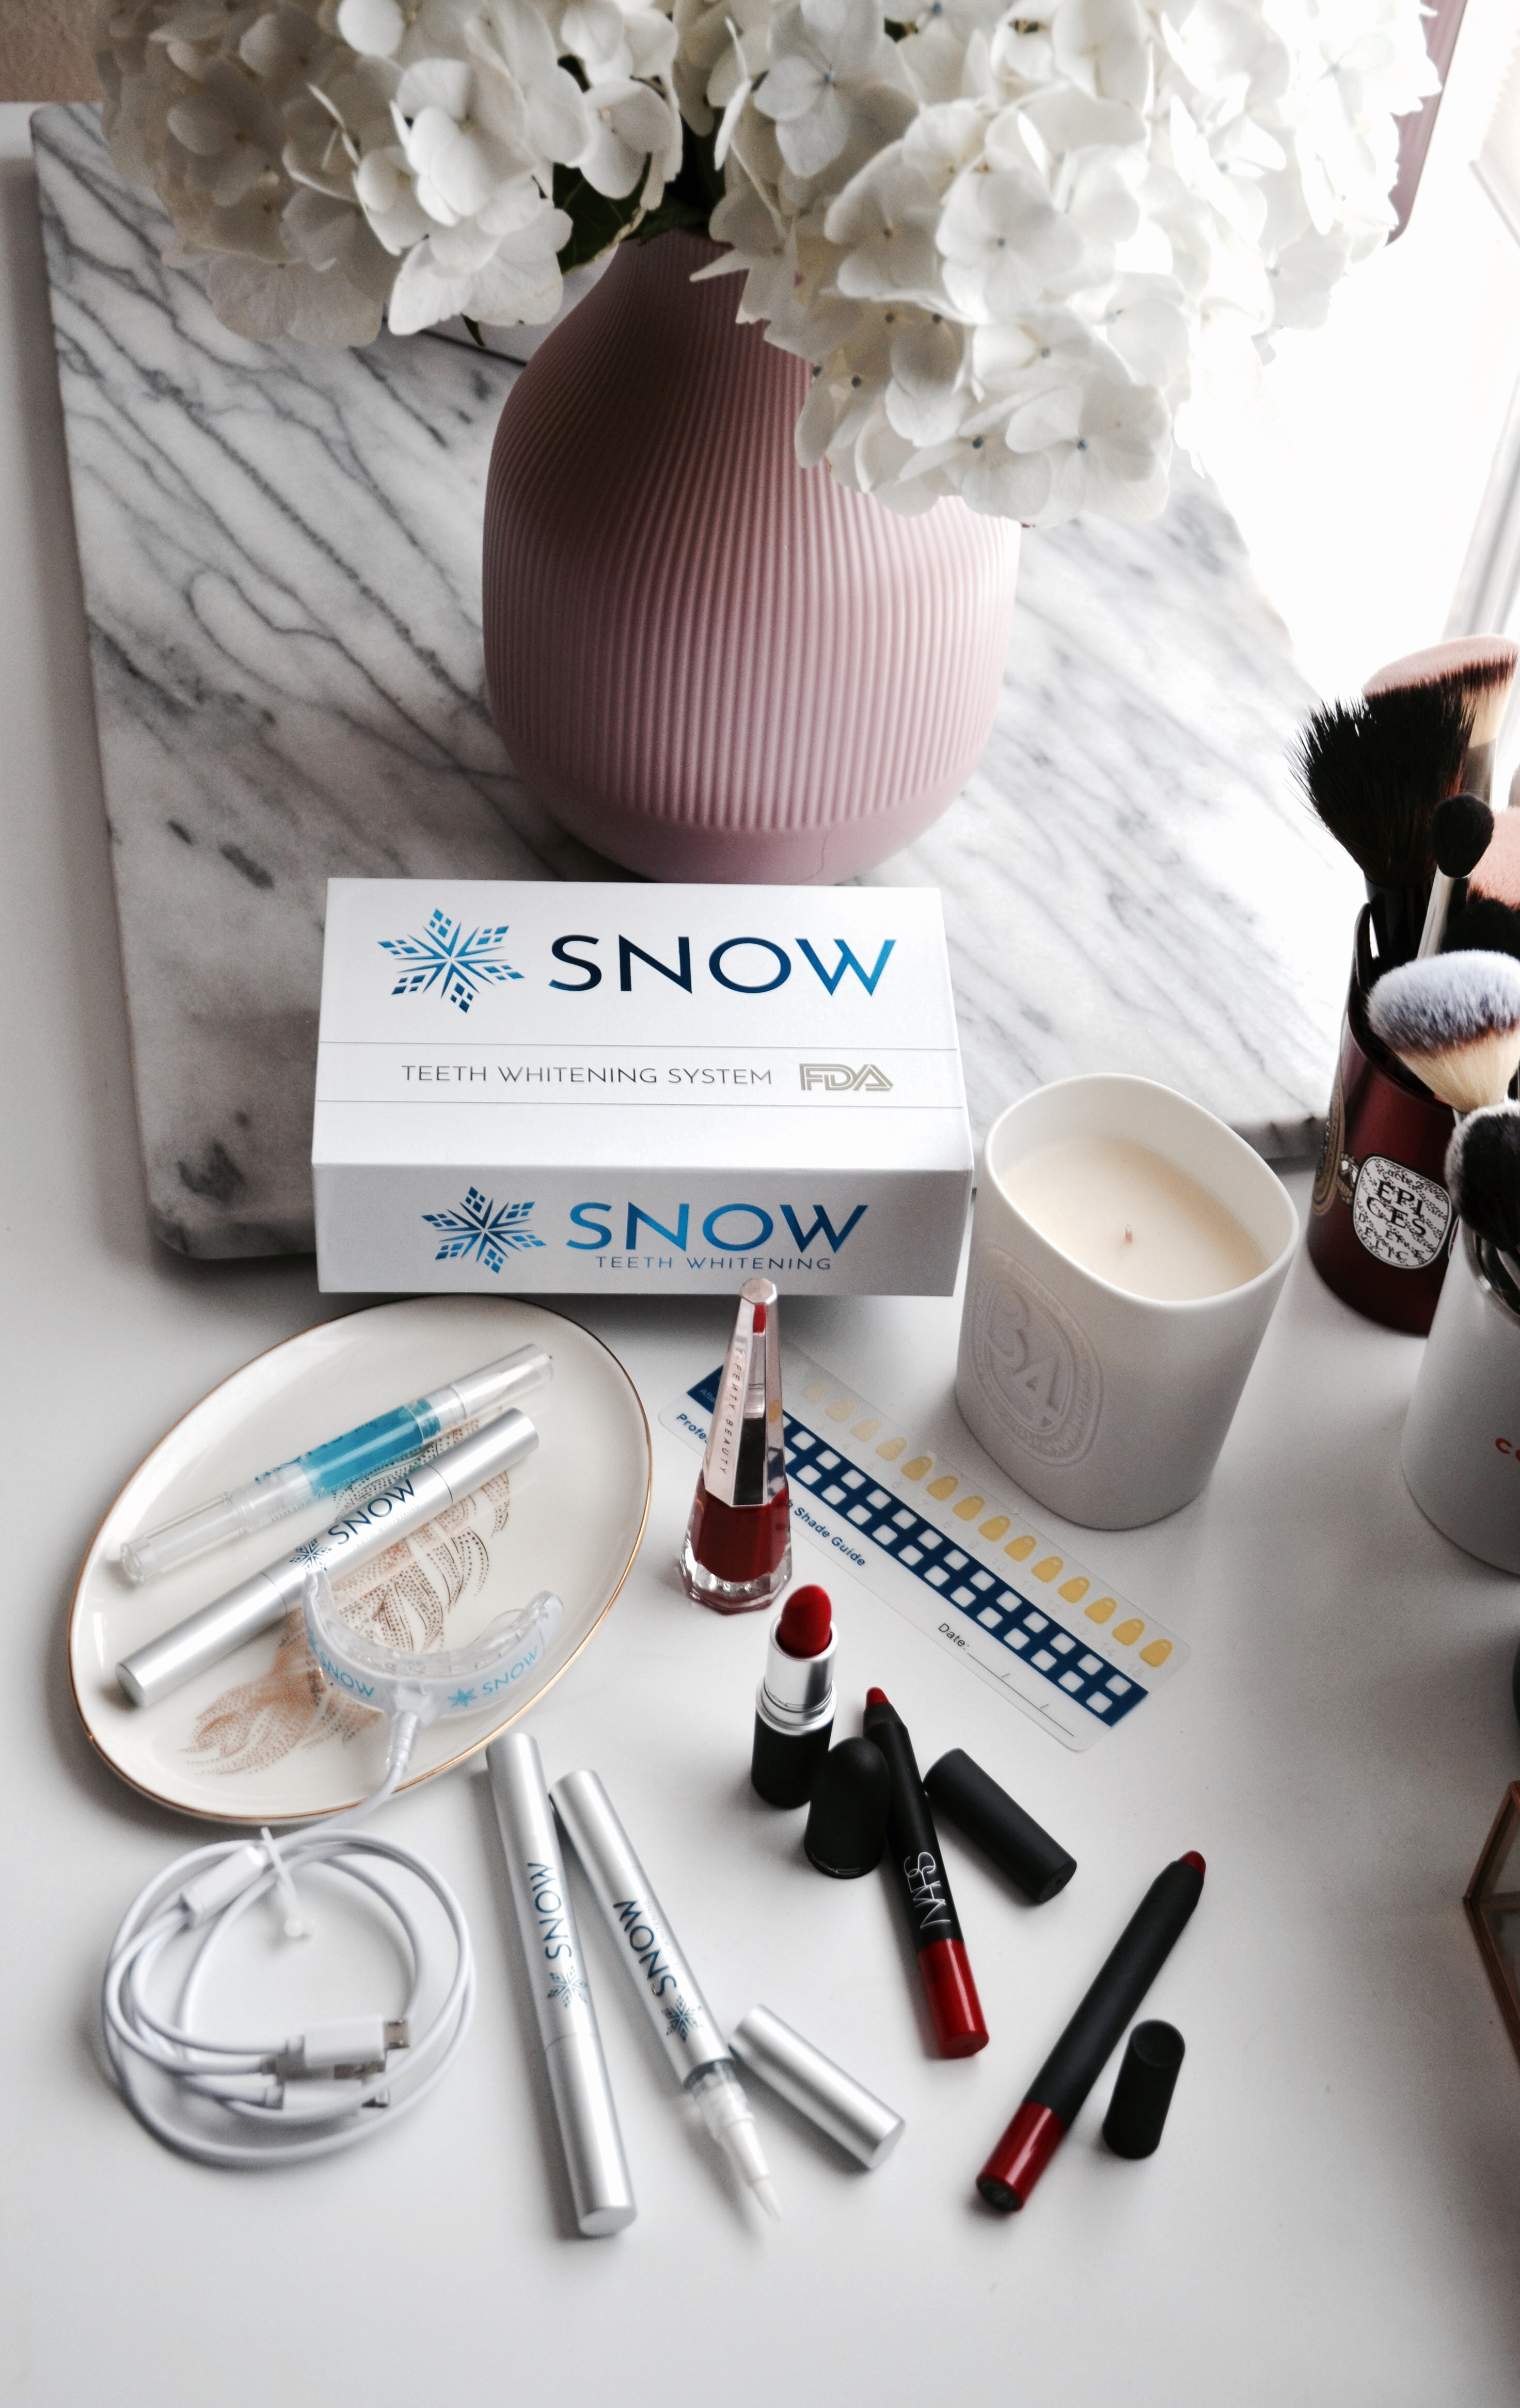 Snow Teeth Whitening Kit Outlet Coupon Promo Code 2020